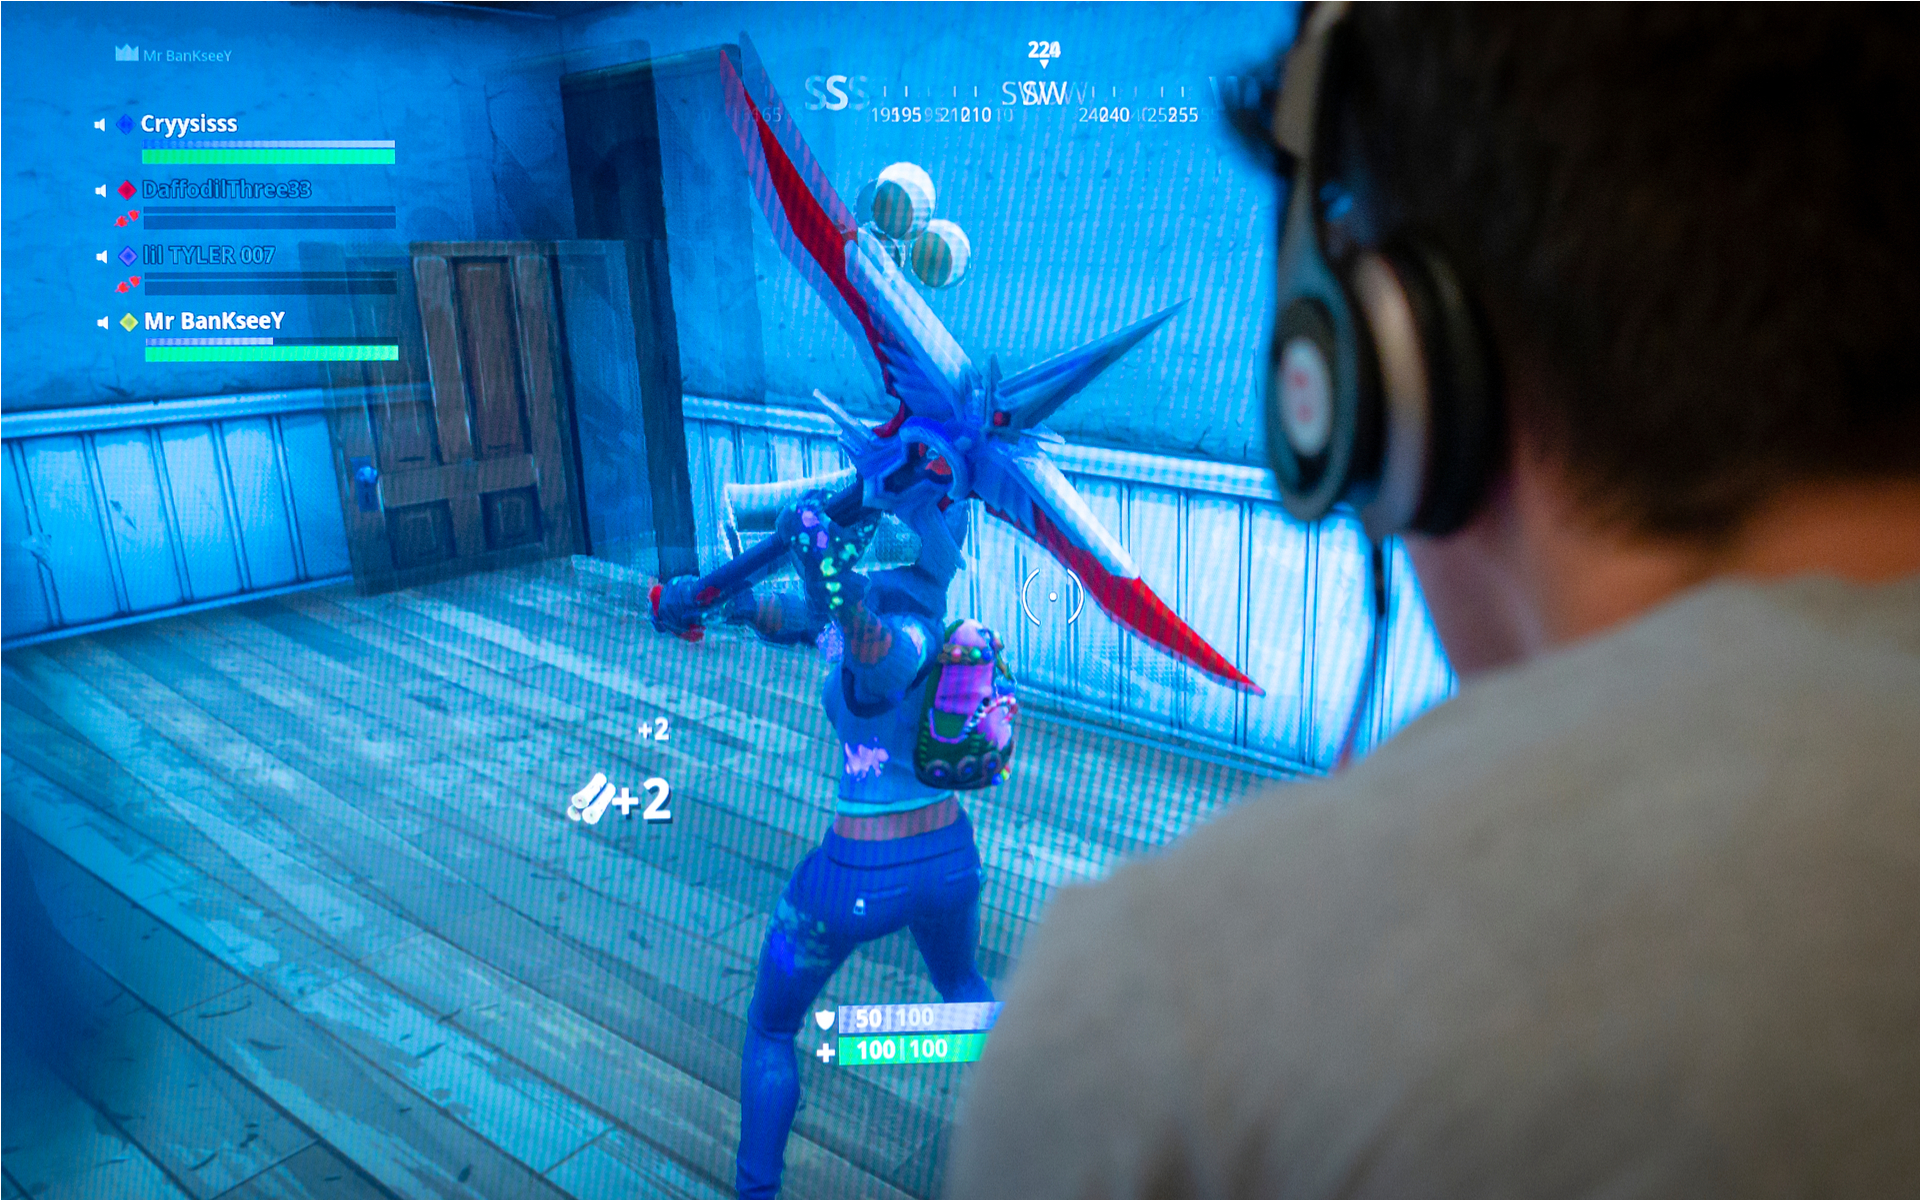 'Fortnite' bug leaves 80 million vulnerable to hack